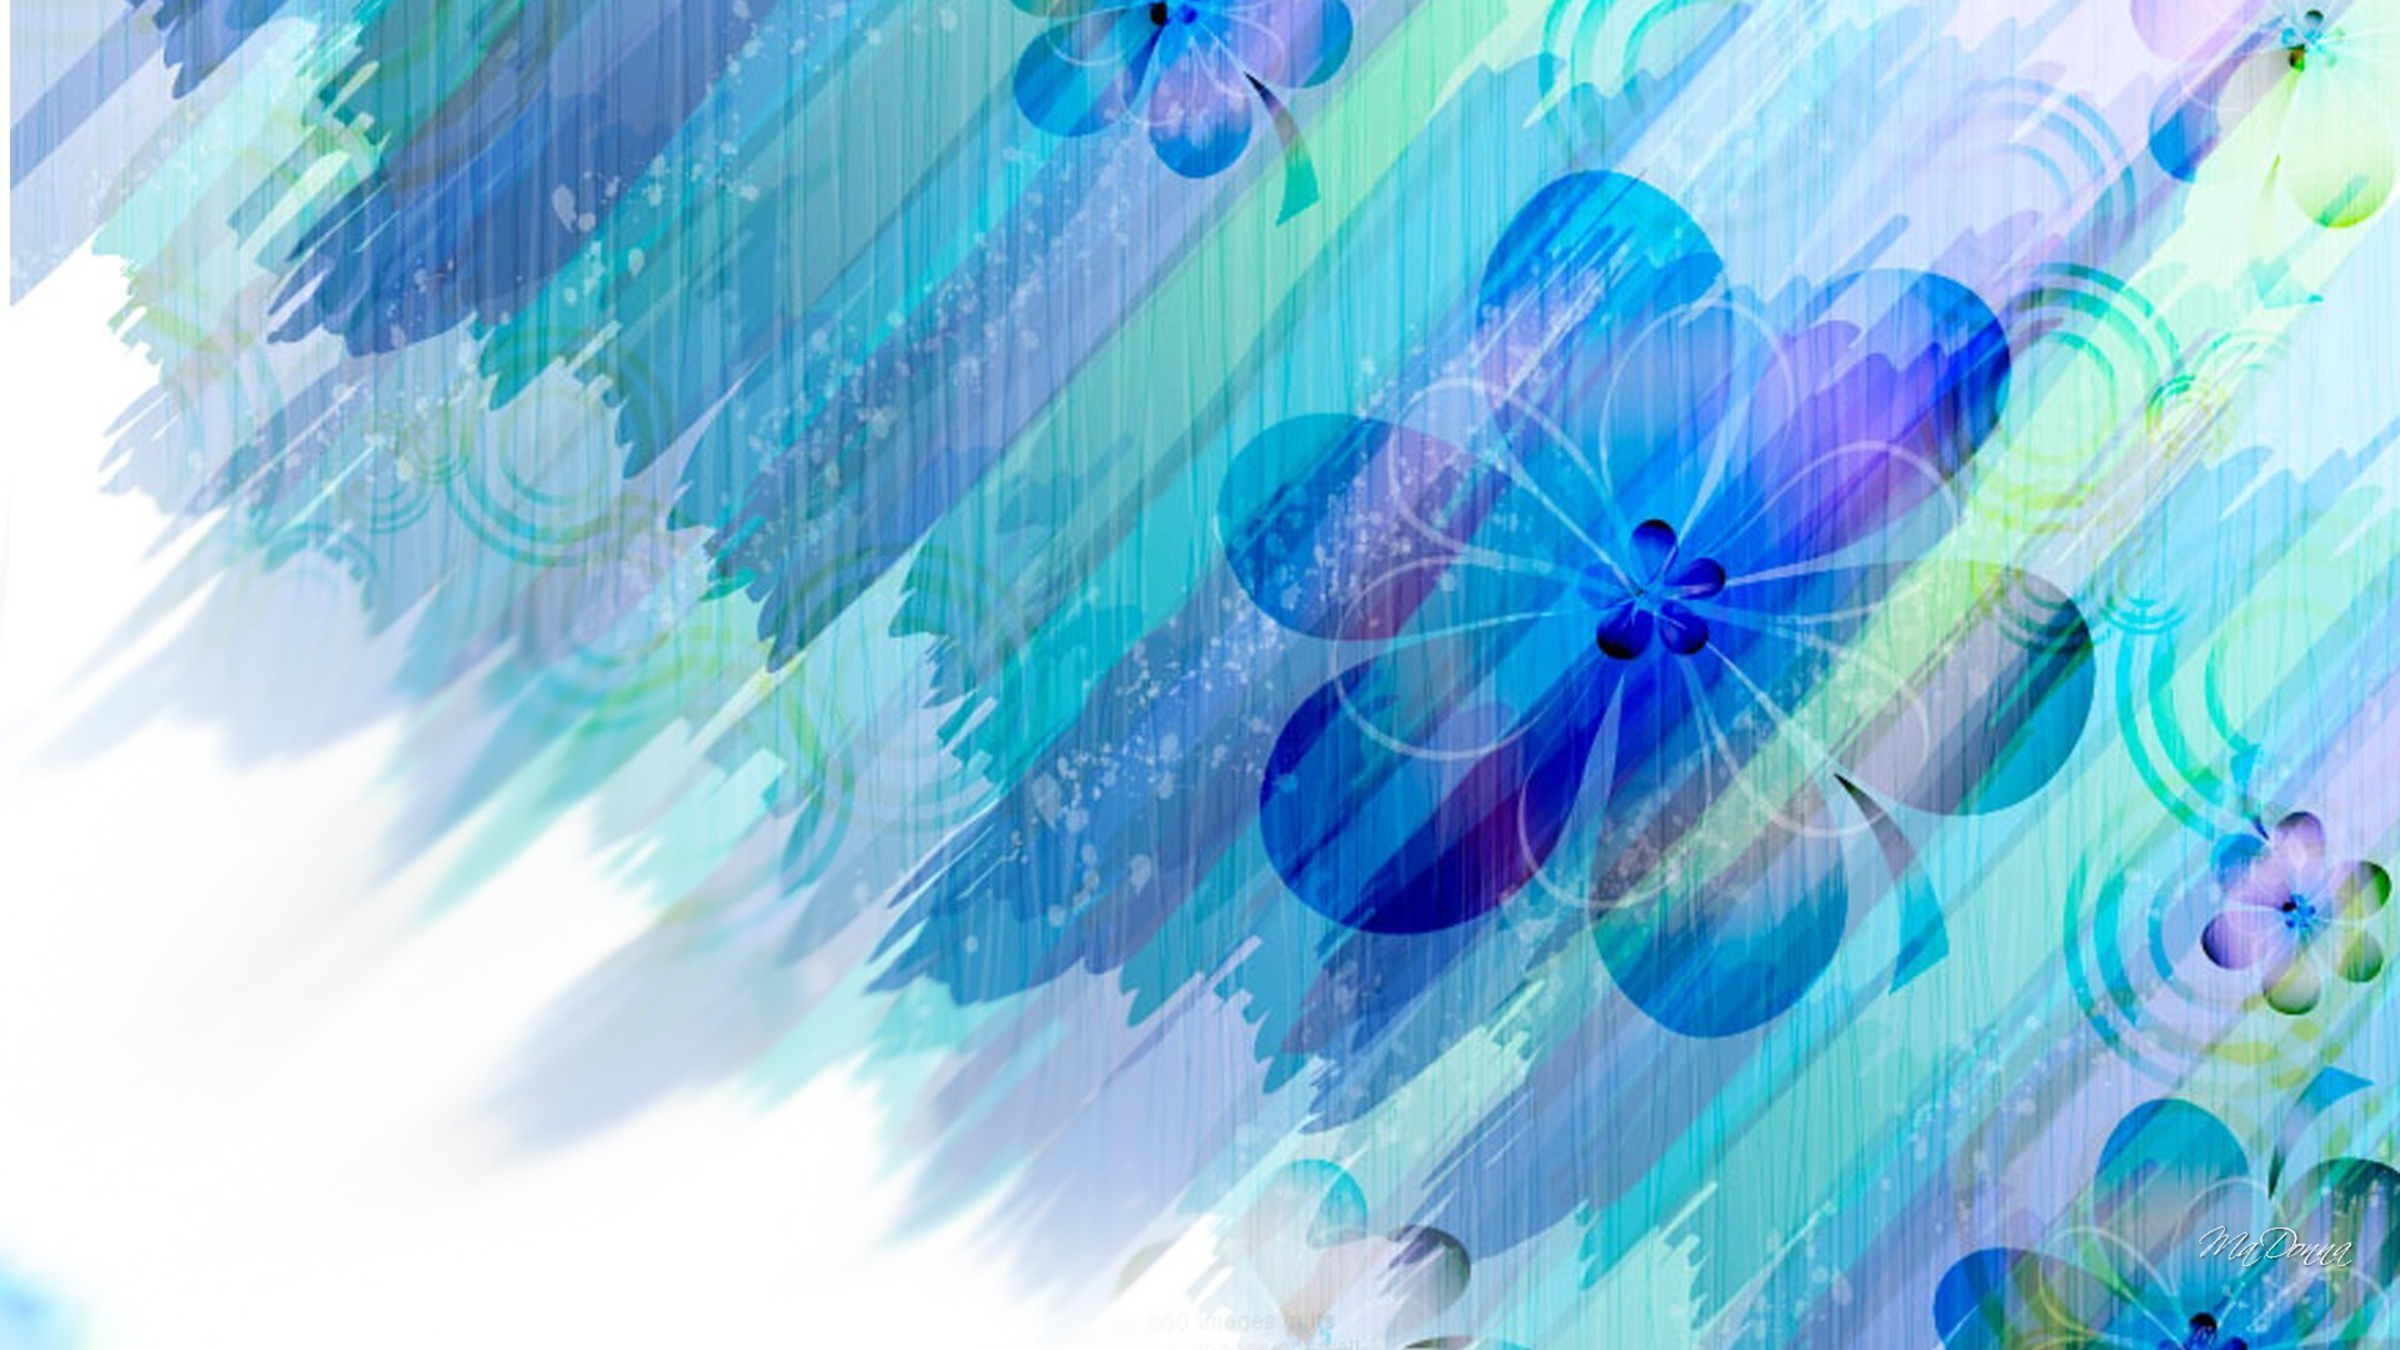 Blue flower abstract wallpaper allwallpaper 7323 pc en wallpaper resolutions izmirmasajfo